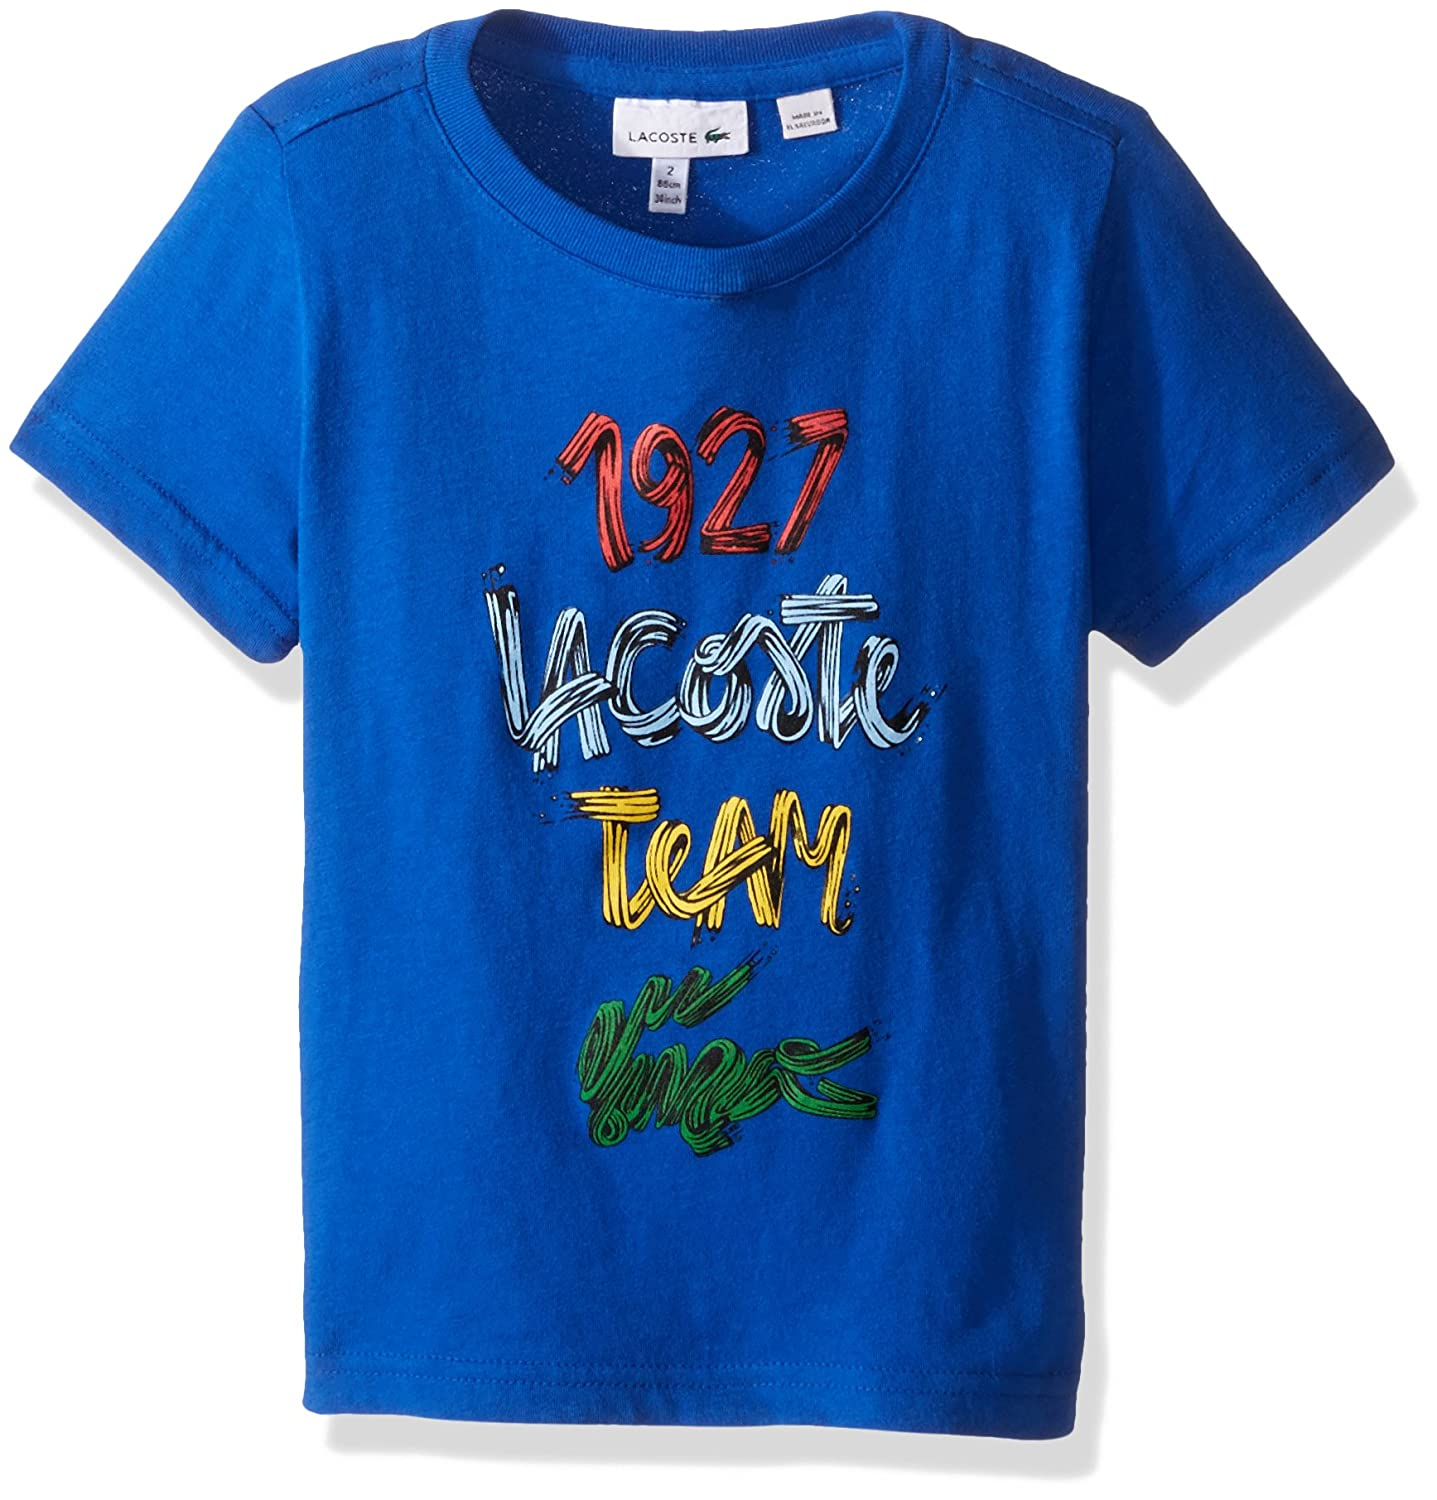 ce5d26ee Amazon.com: Lacoste Boys' Short Sleeve 1927 Croc Graphic T-Shirt ...